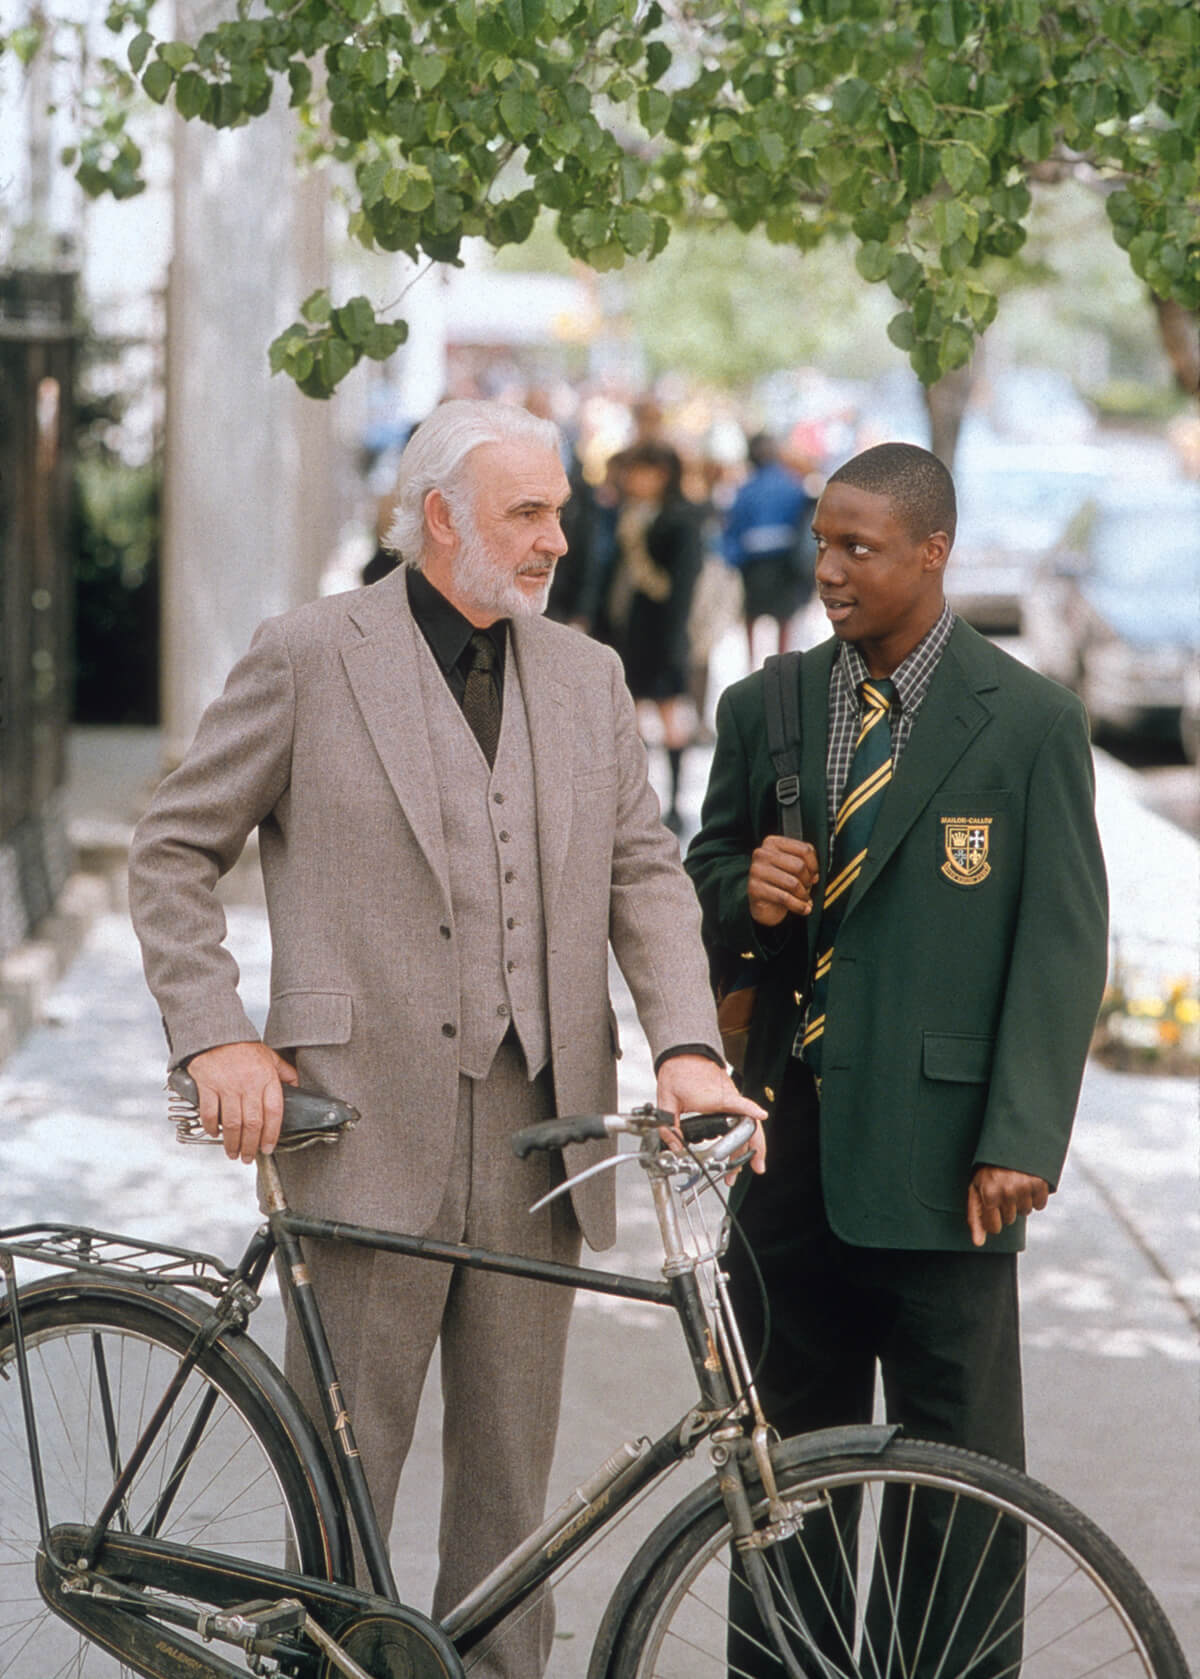 finding_forrester_cn2160-2a-14r